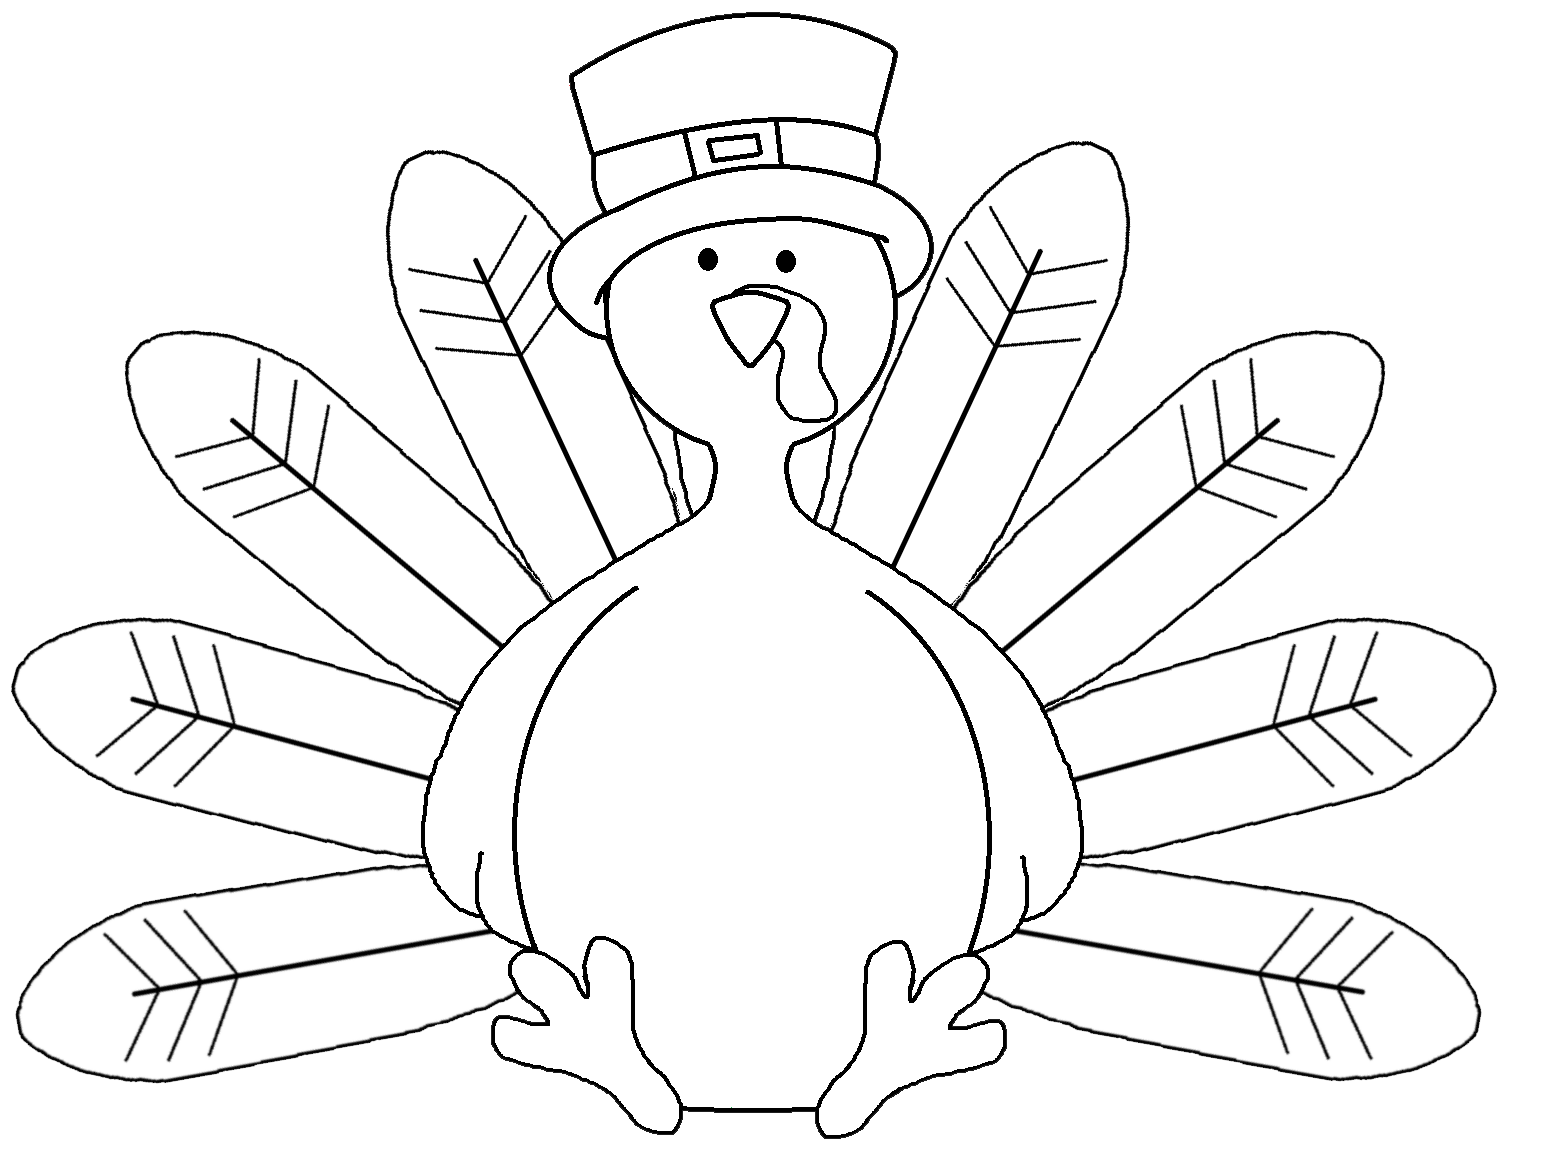 Black & white thanksgiving clipart clipart library library 28+ Collection of Large Thanksgiving Turkey Clipart | High quality ... clipart library library